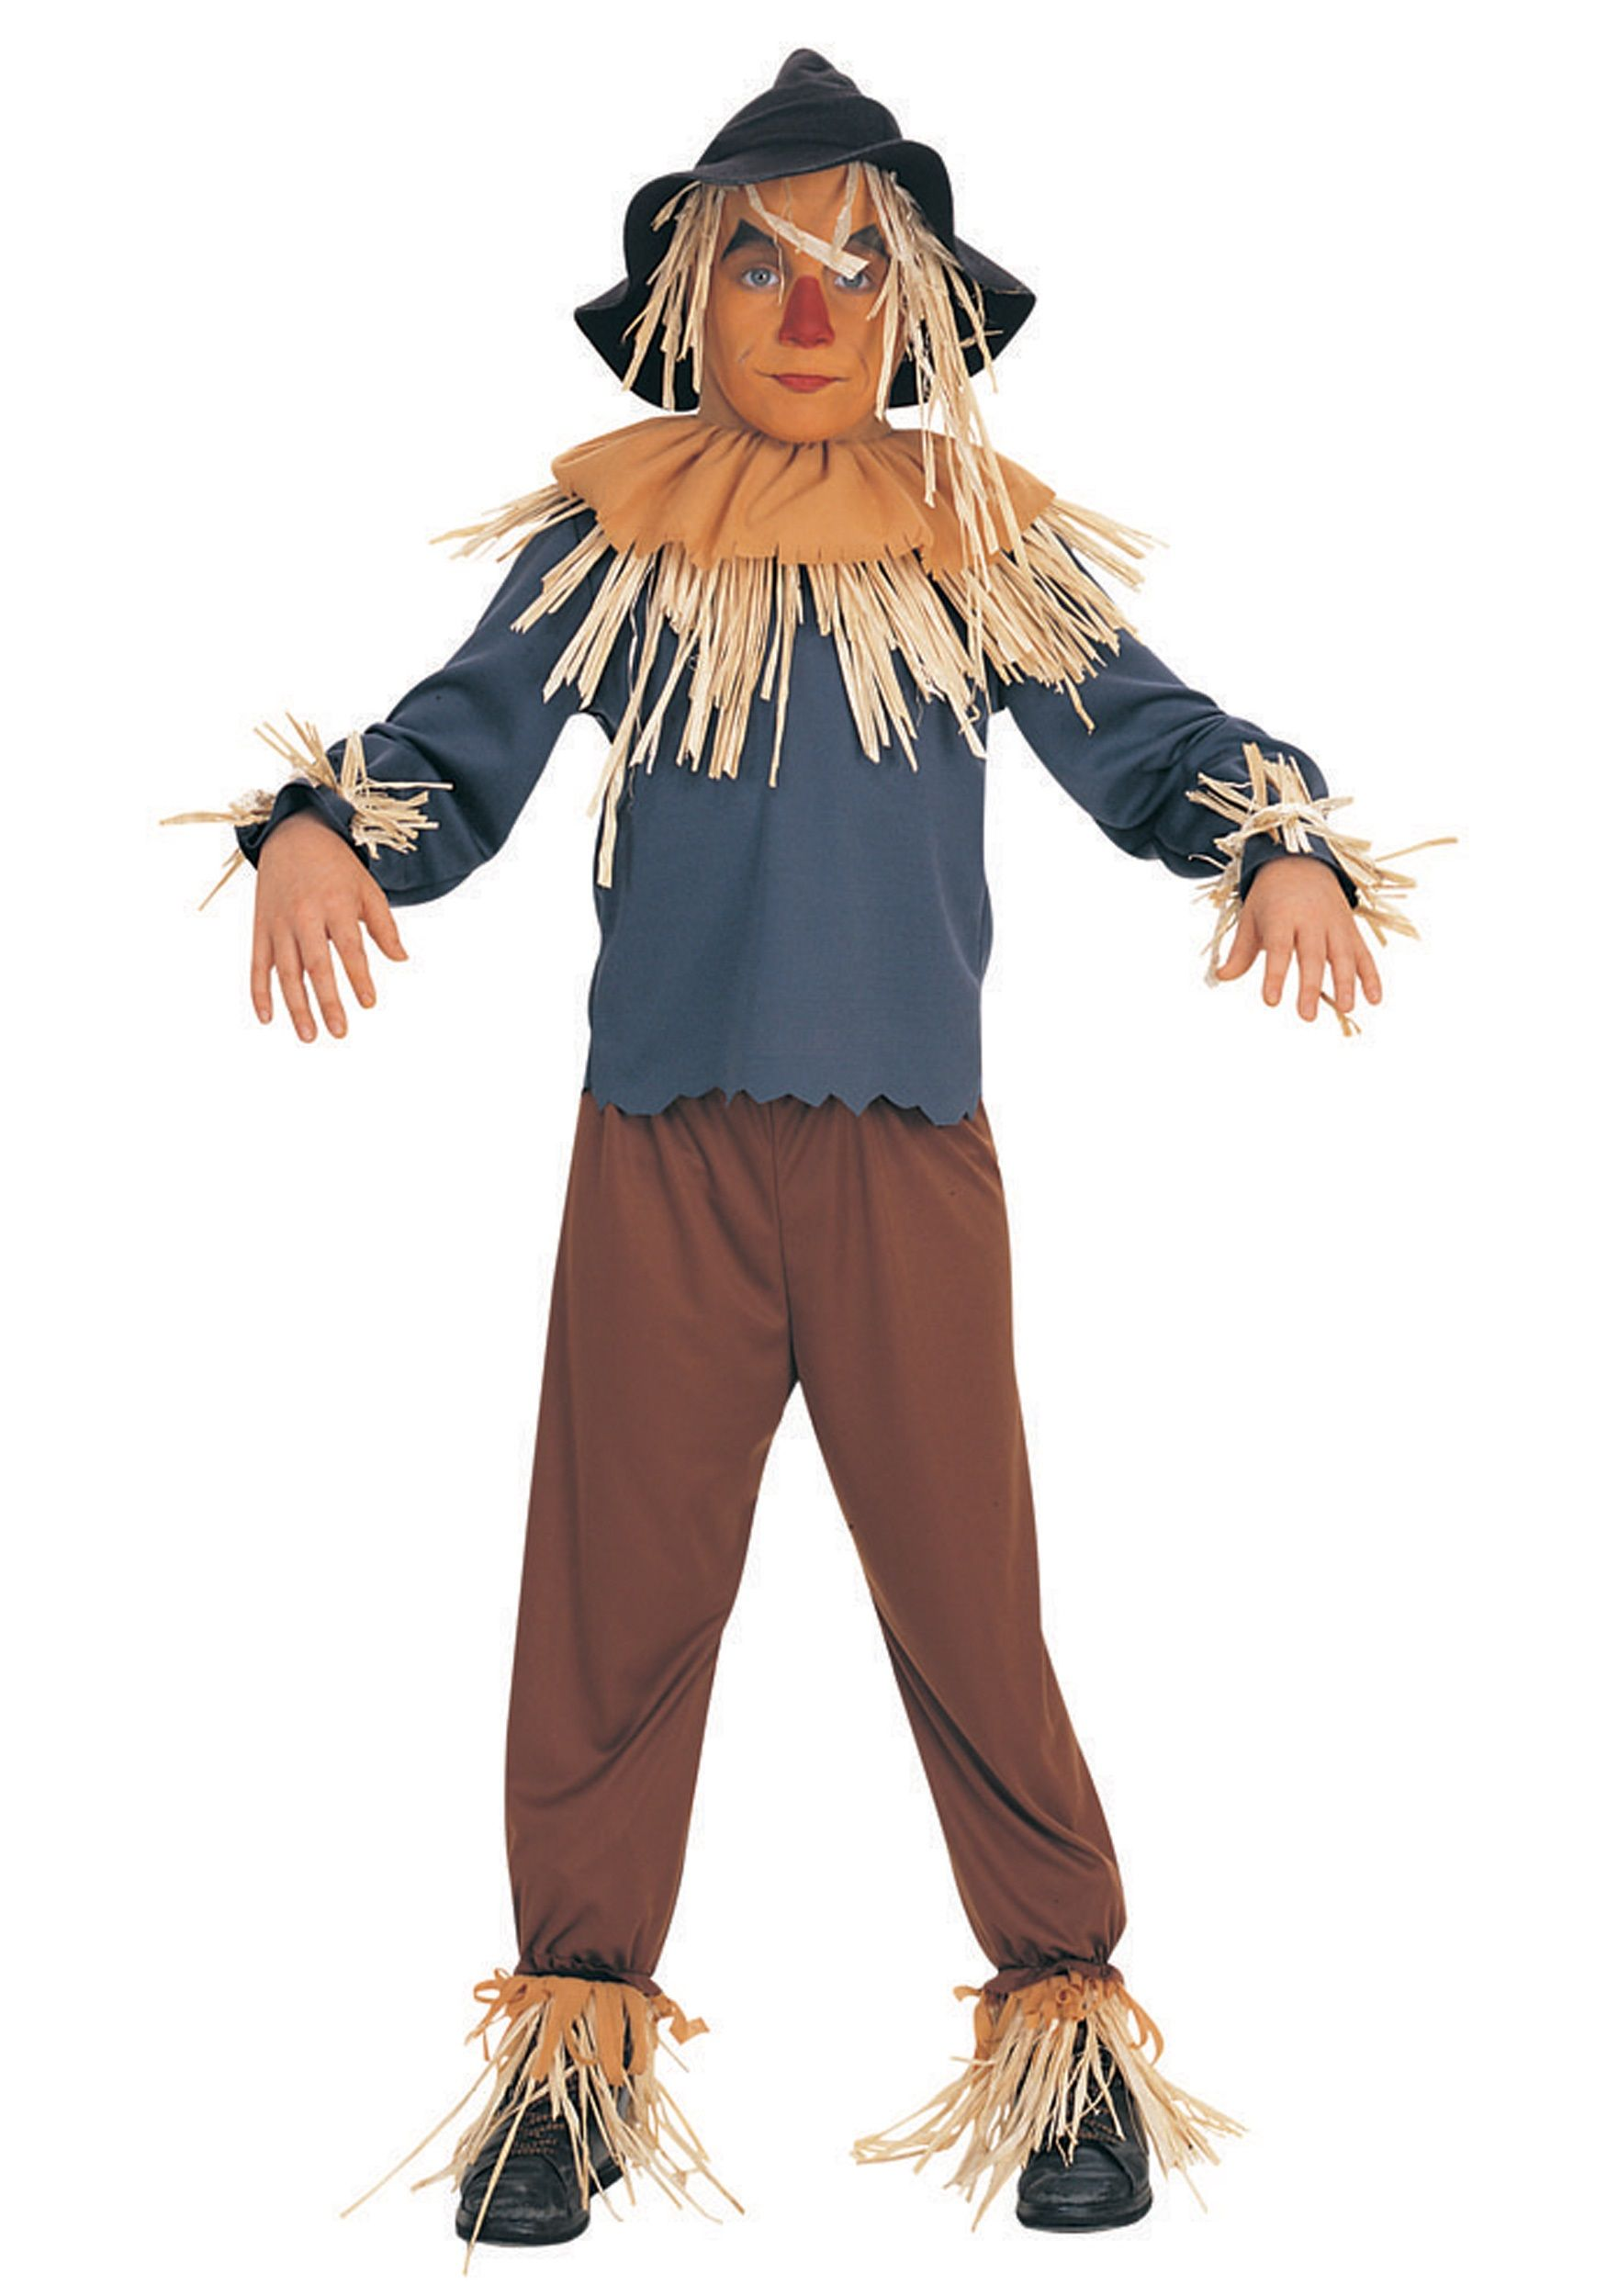 Child Scarecrow Costume | Dr. oz, Costume ideas and Search